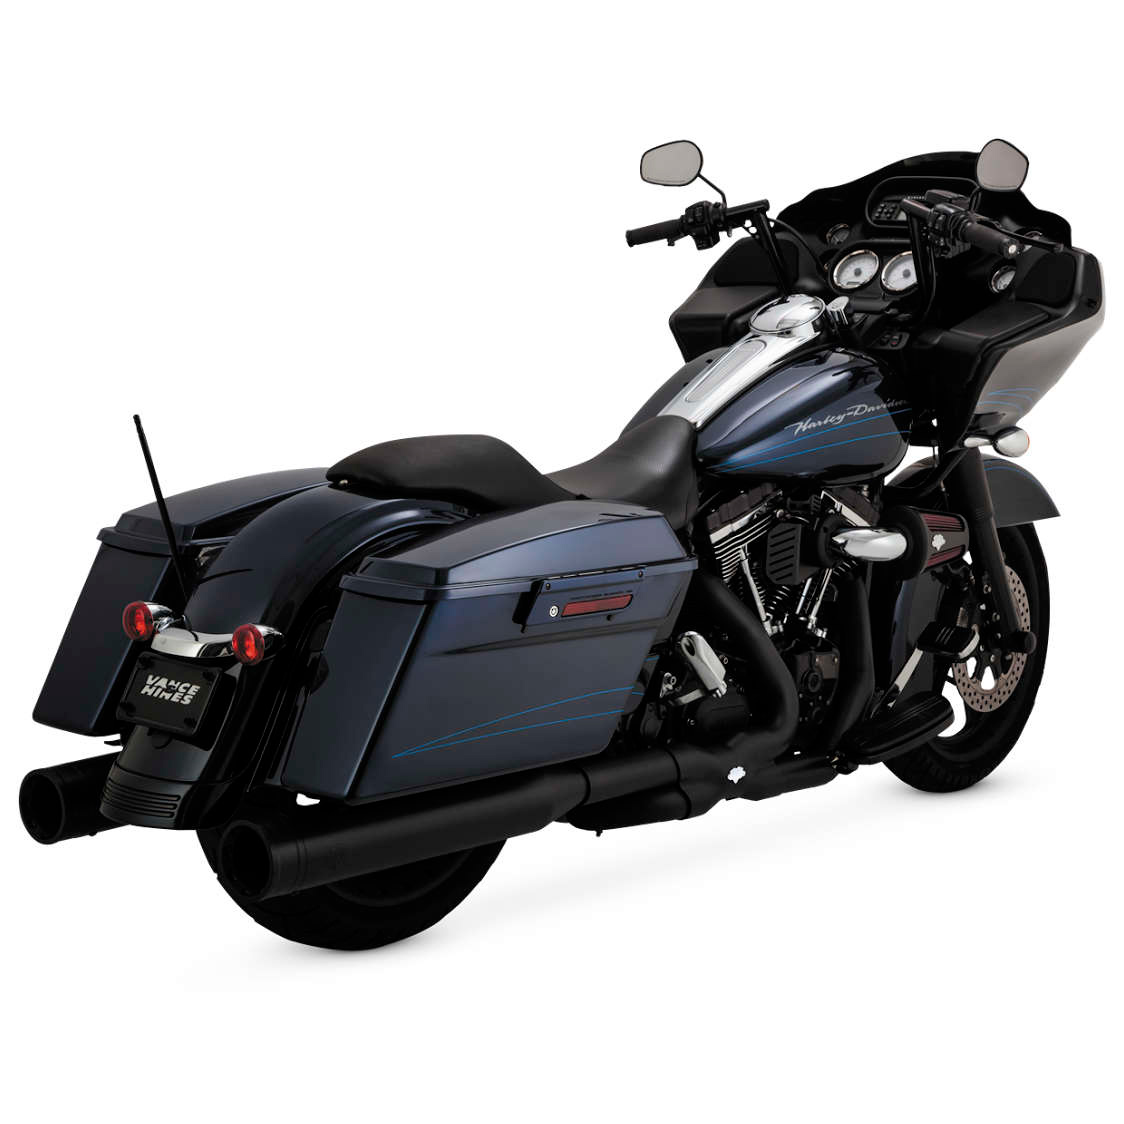 Vance & Hines Power Duals CTR Exhaust System Black